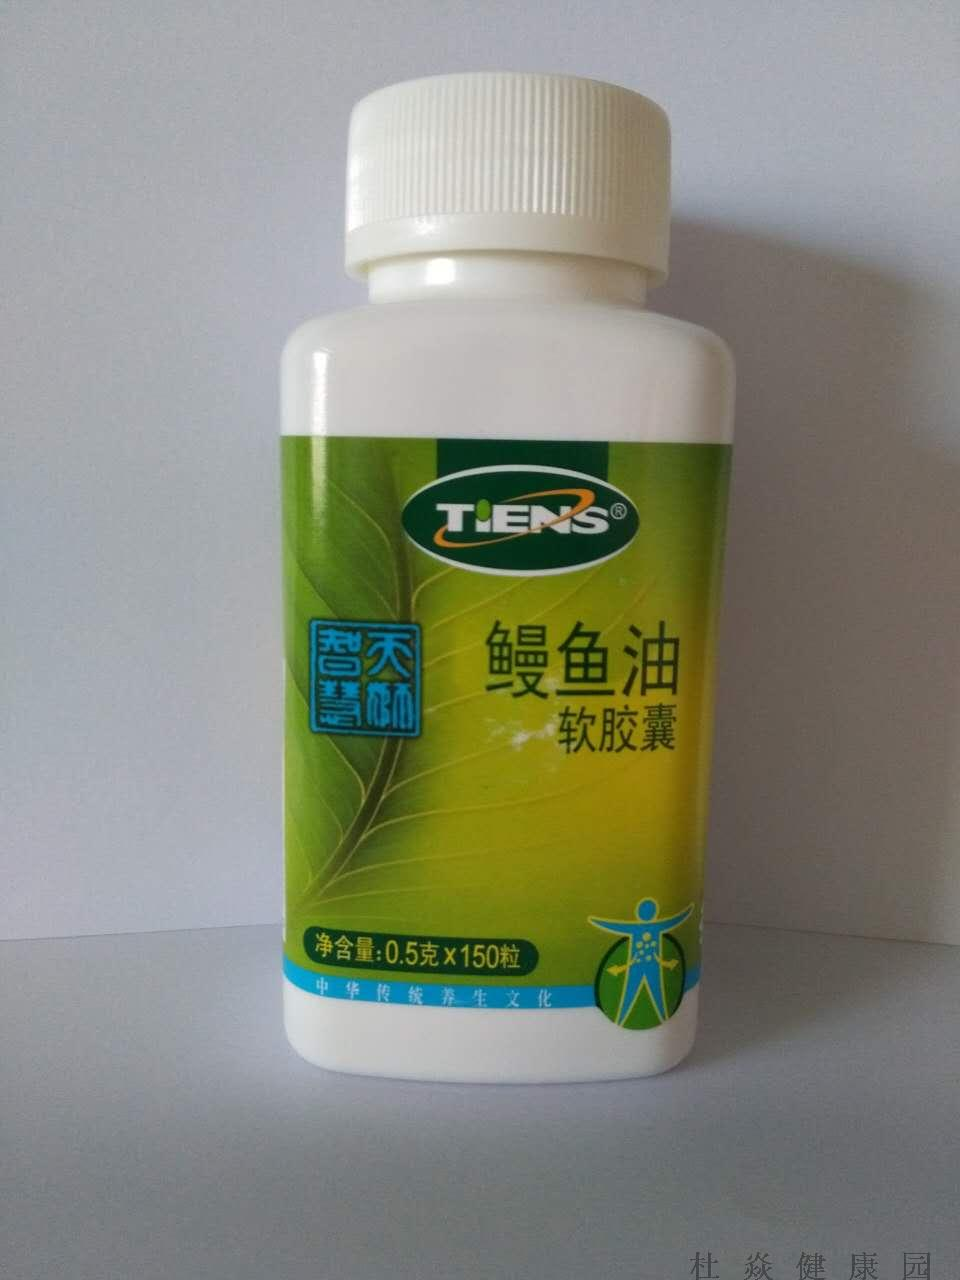 5 Bottles of Tien EEL oil genuine 2 boxes tien nutrient super calcium tien s super calcium